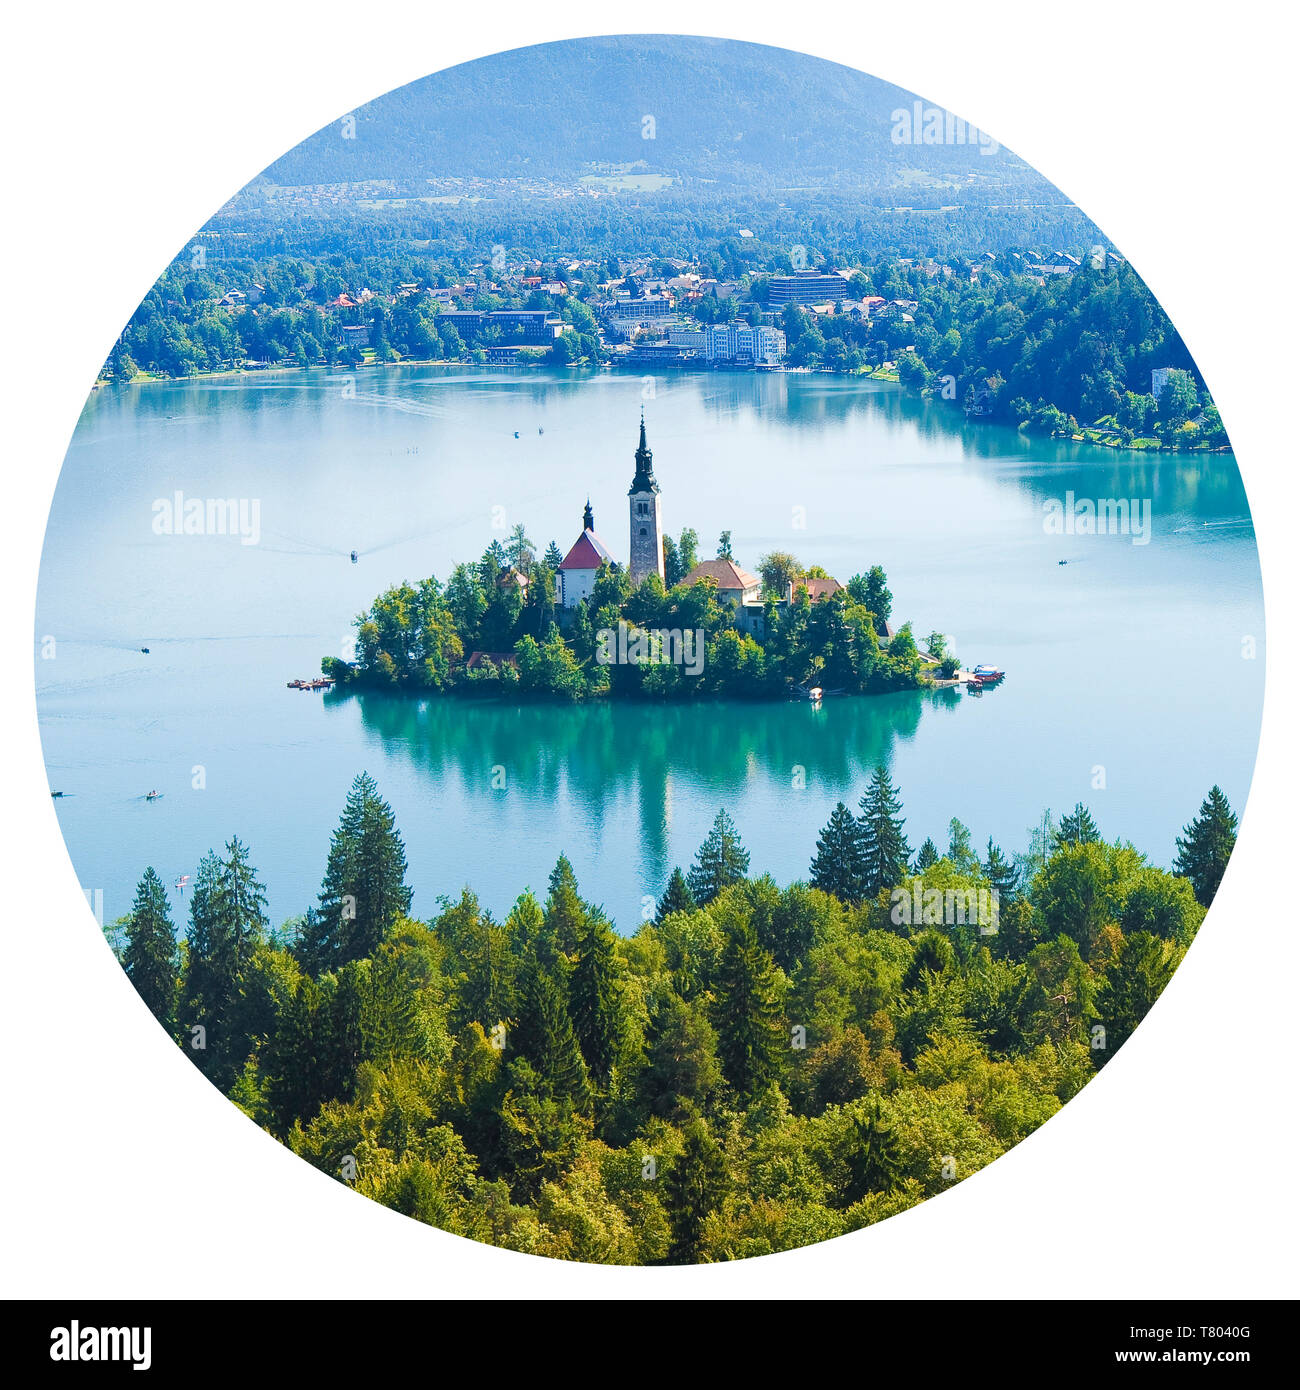 Round icon of Lake Bled (the most famous lake in Slovenia) with the island of the church and the typical wooden boats, called Pletna (Europe - Sloveni - Stock Image